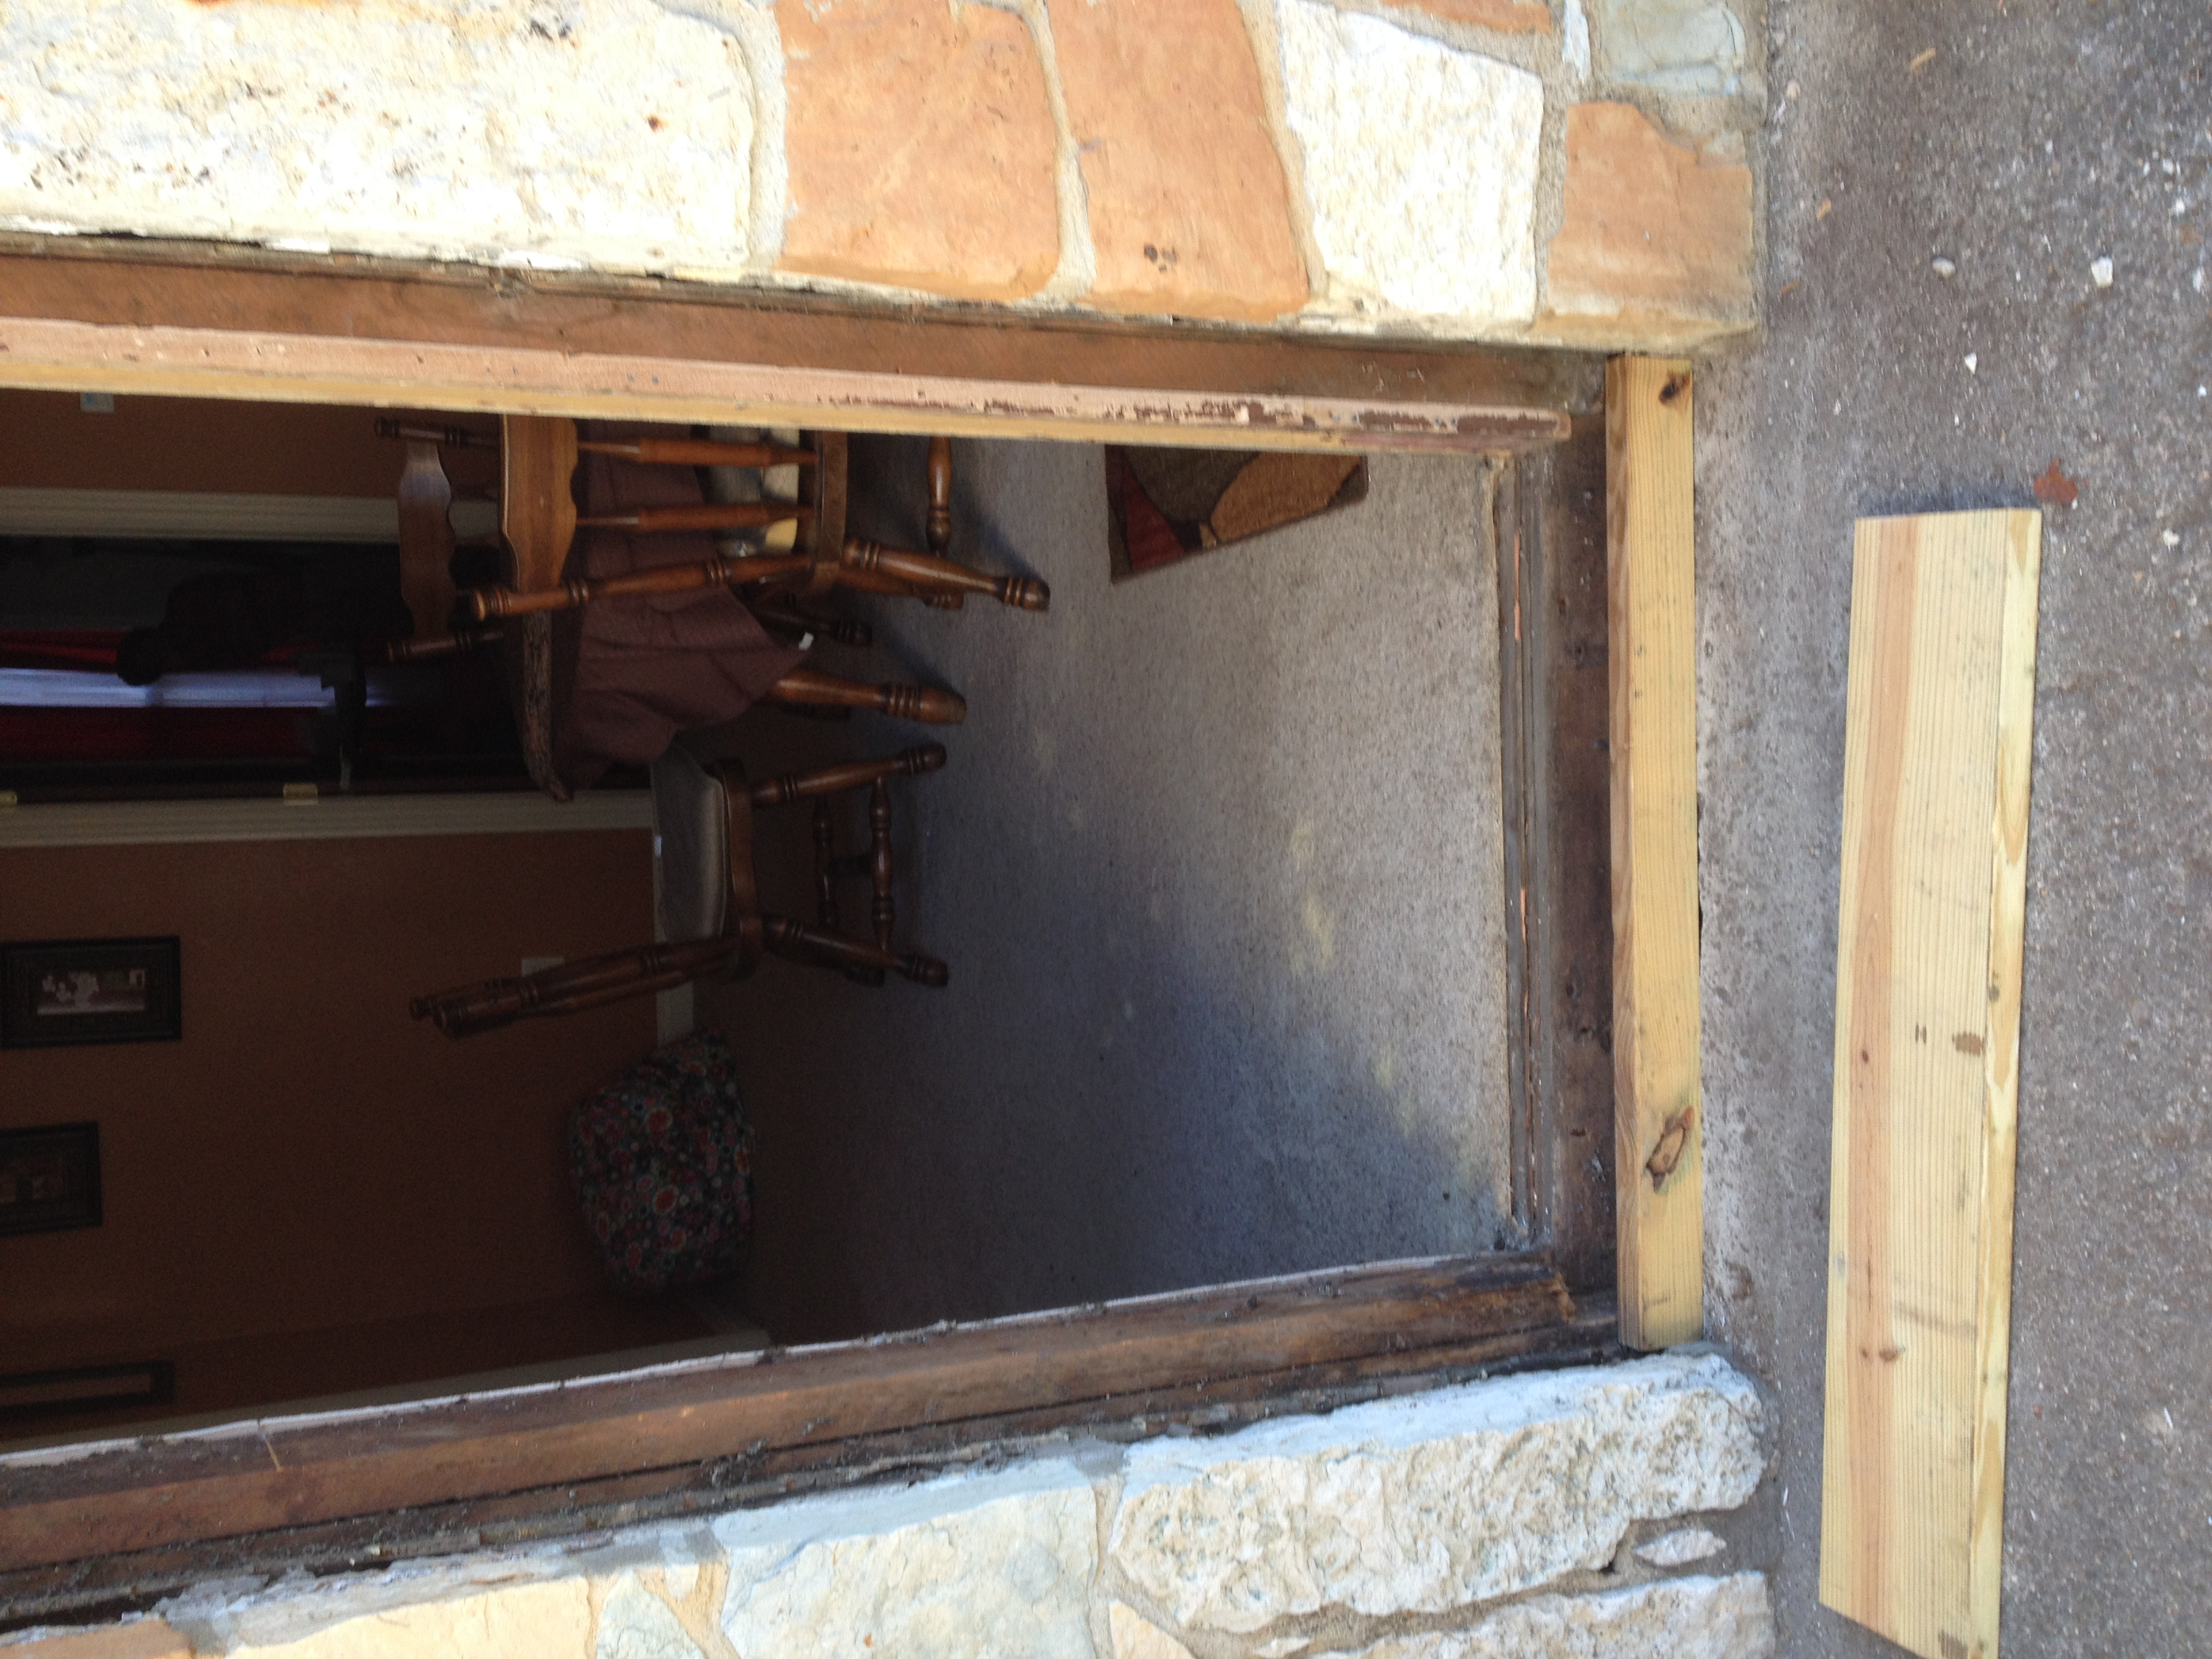 32 Exterior Door Ebay Doorstep Threshold Plate Threshold Strip Pedals Styling Replacing And